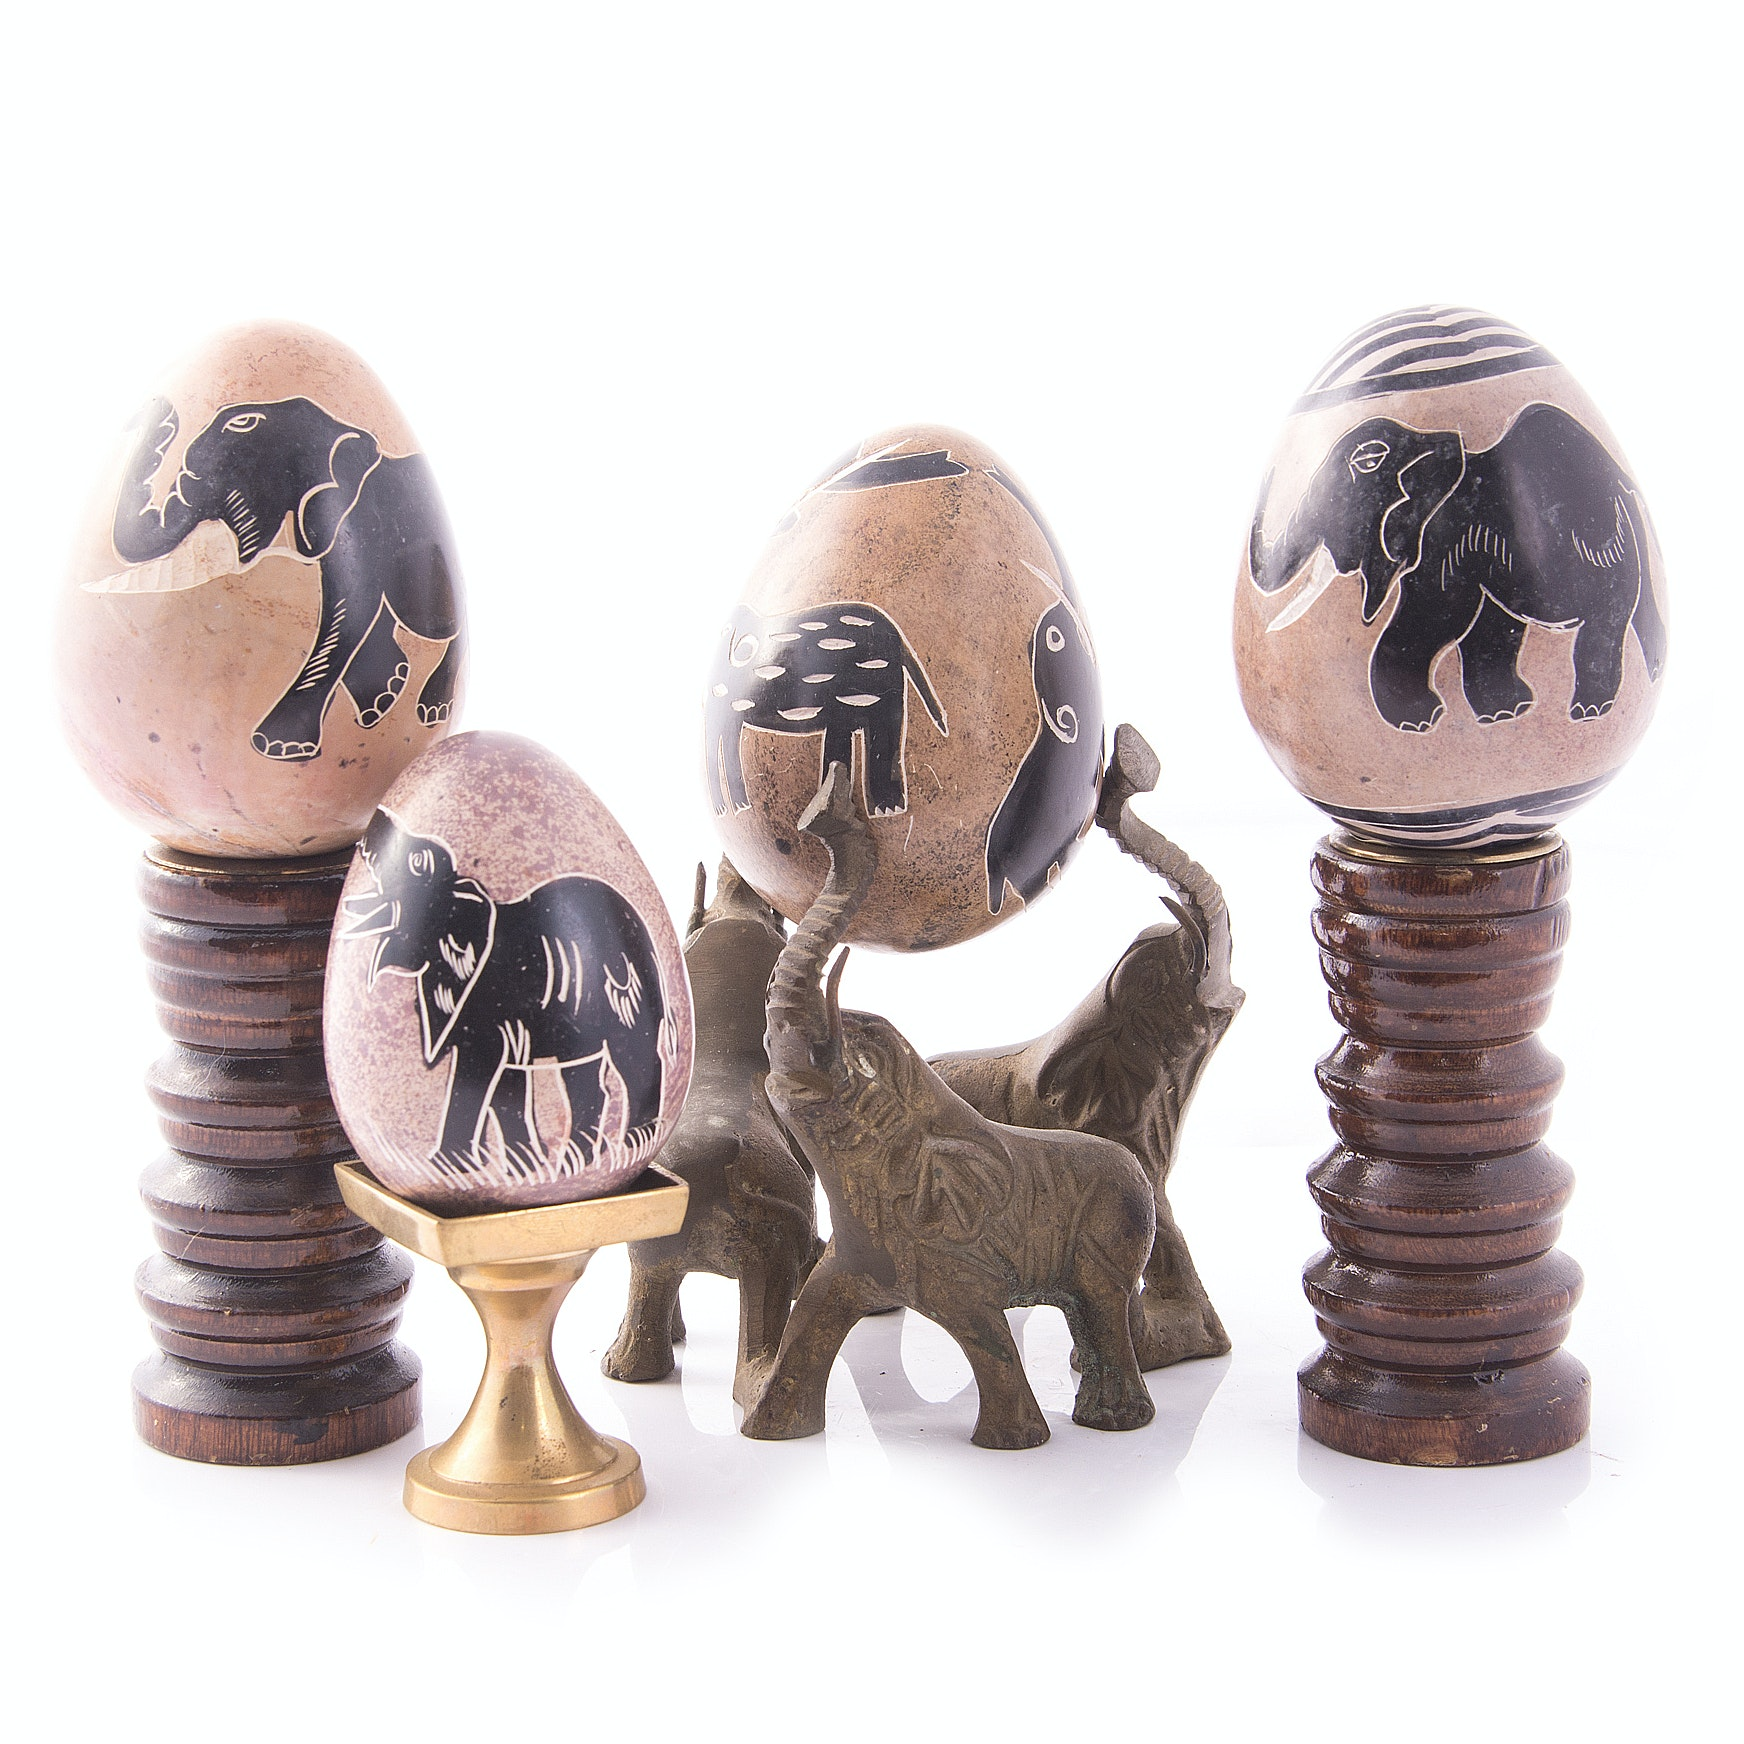 Hand Carved Stone Eggs